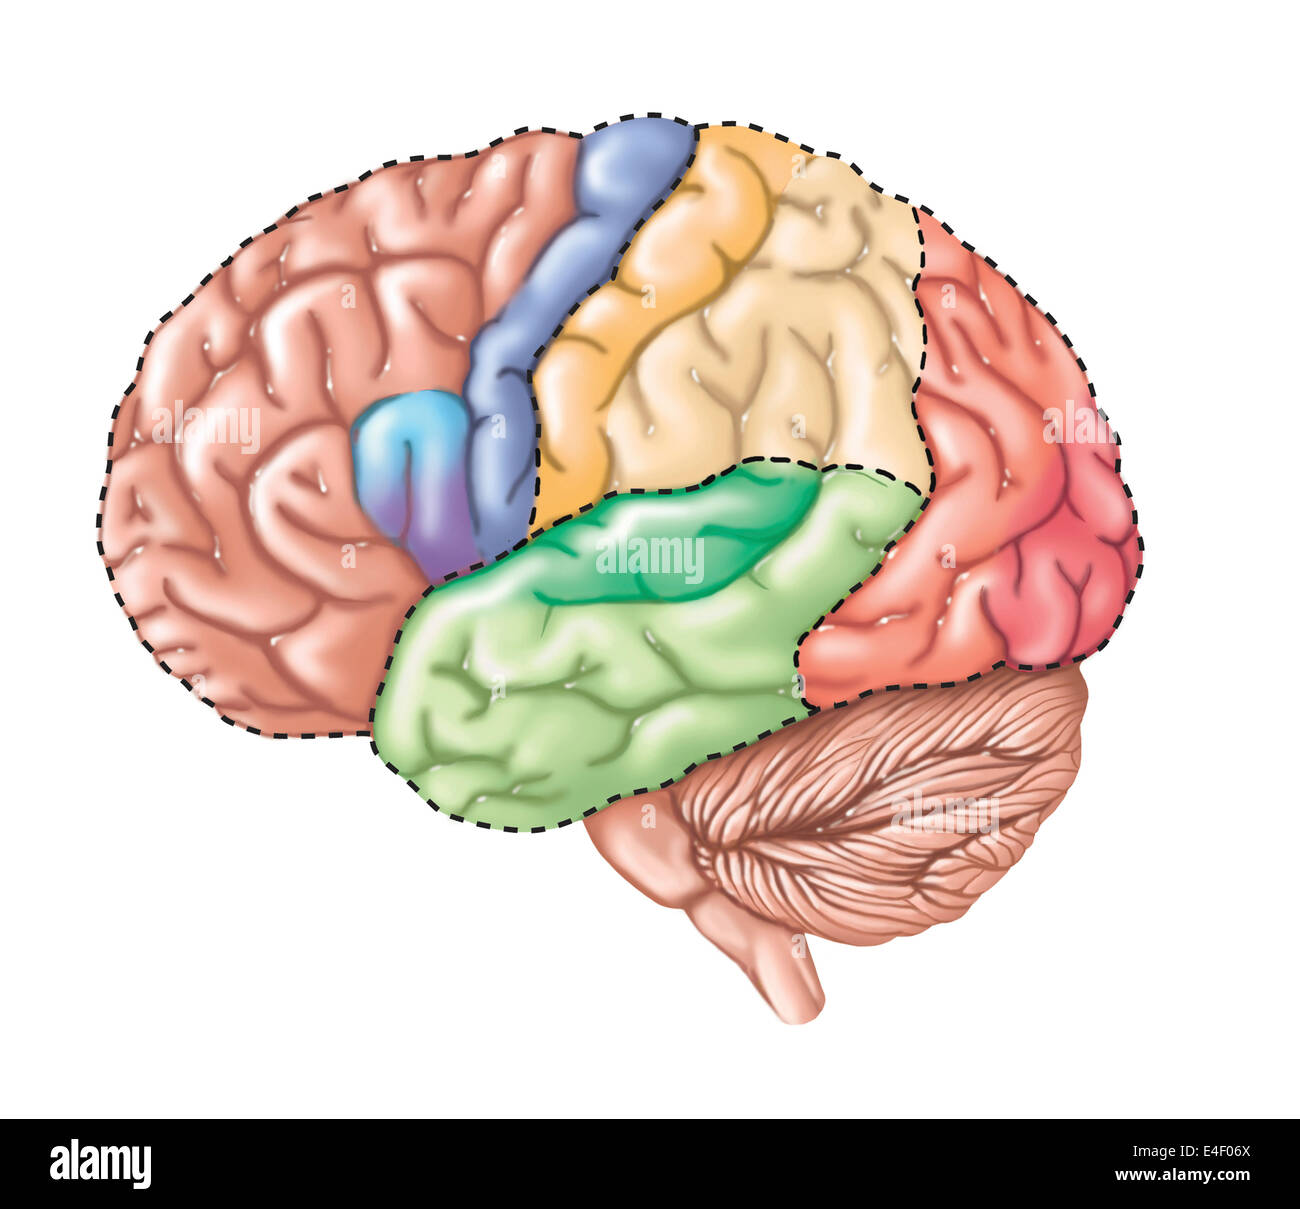 Side View Of The Human Brain Showing The Functional Lobes